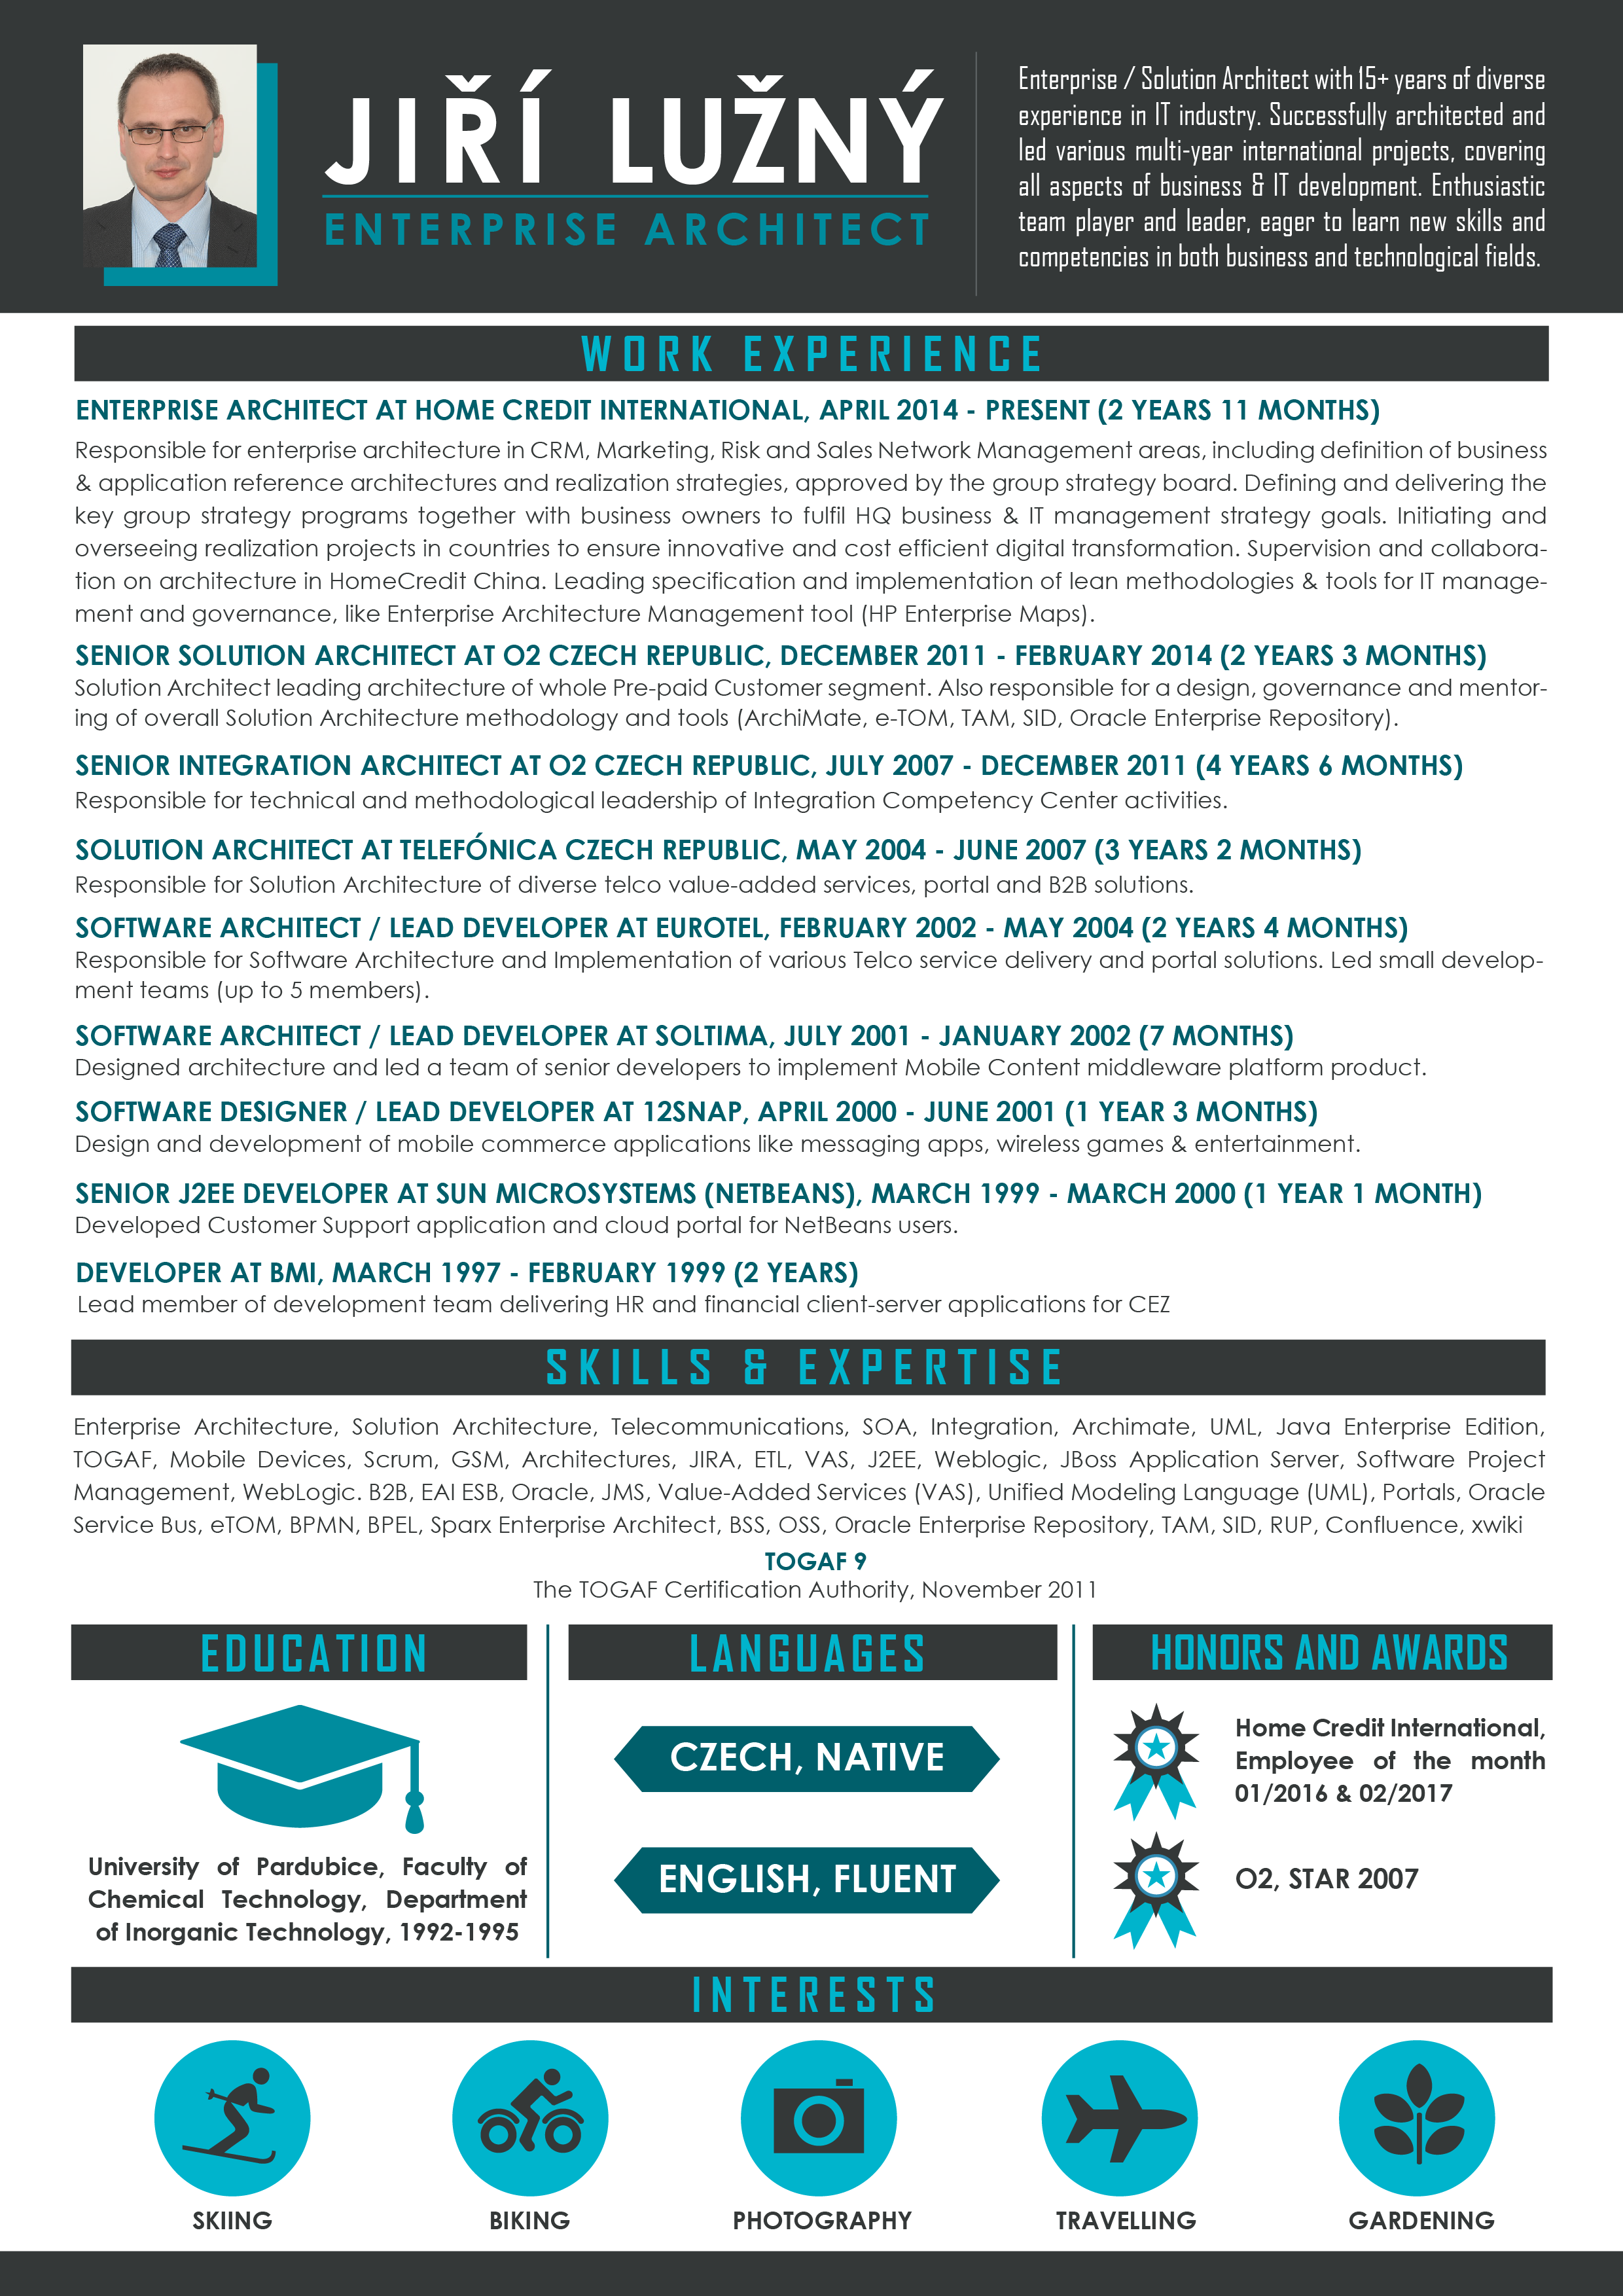 Resume Infographic - Create Amazing Infographics Easel.ly!